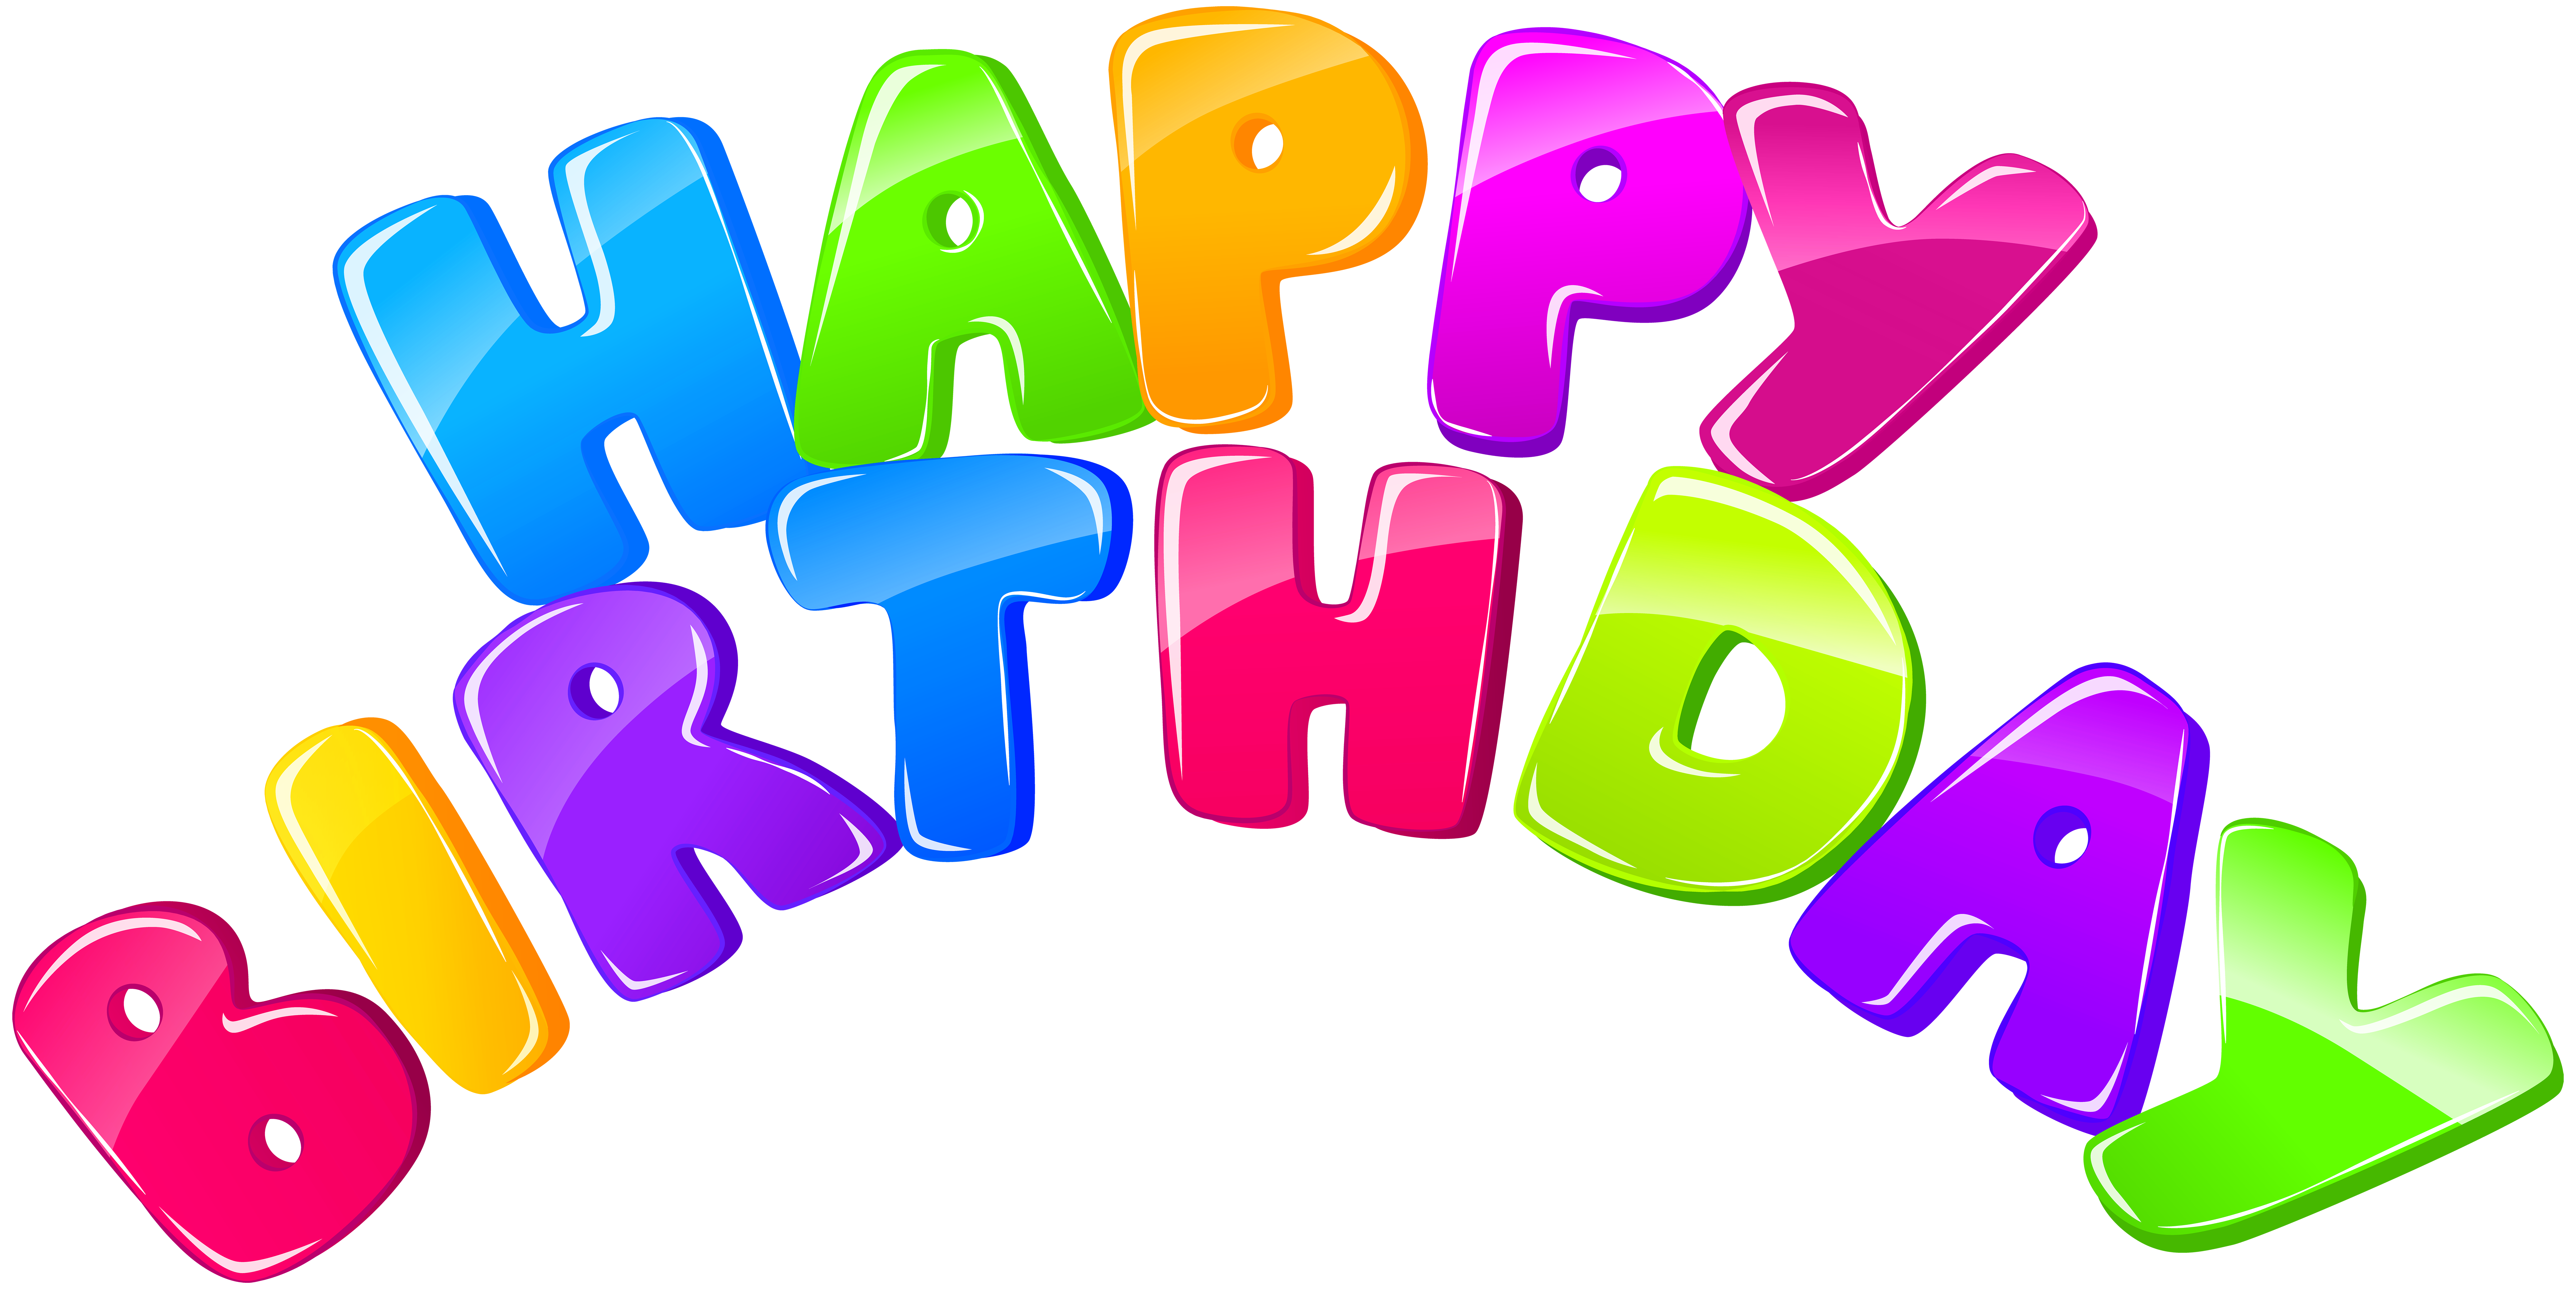 Happy birthday png images. Clip art image gallery